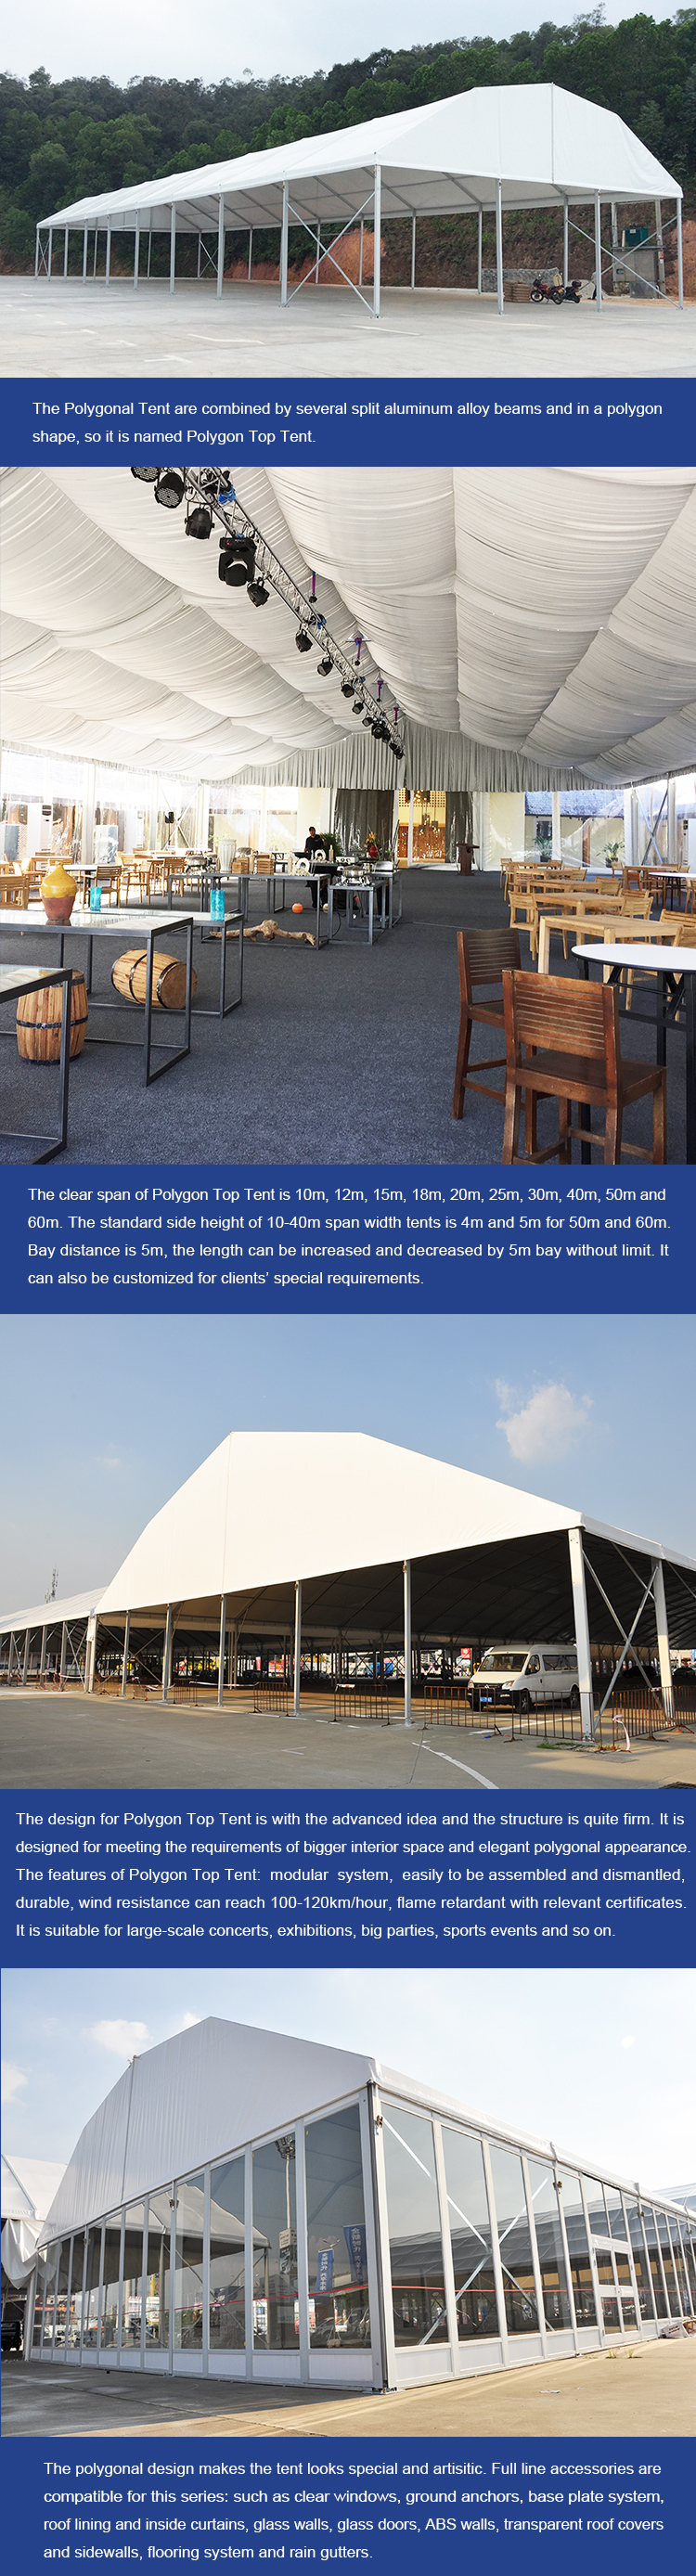 COSCO large aluminum frame pvc coated 20x40 polygonal roof event tent